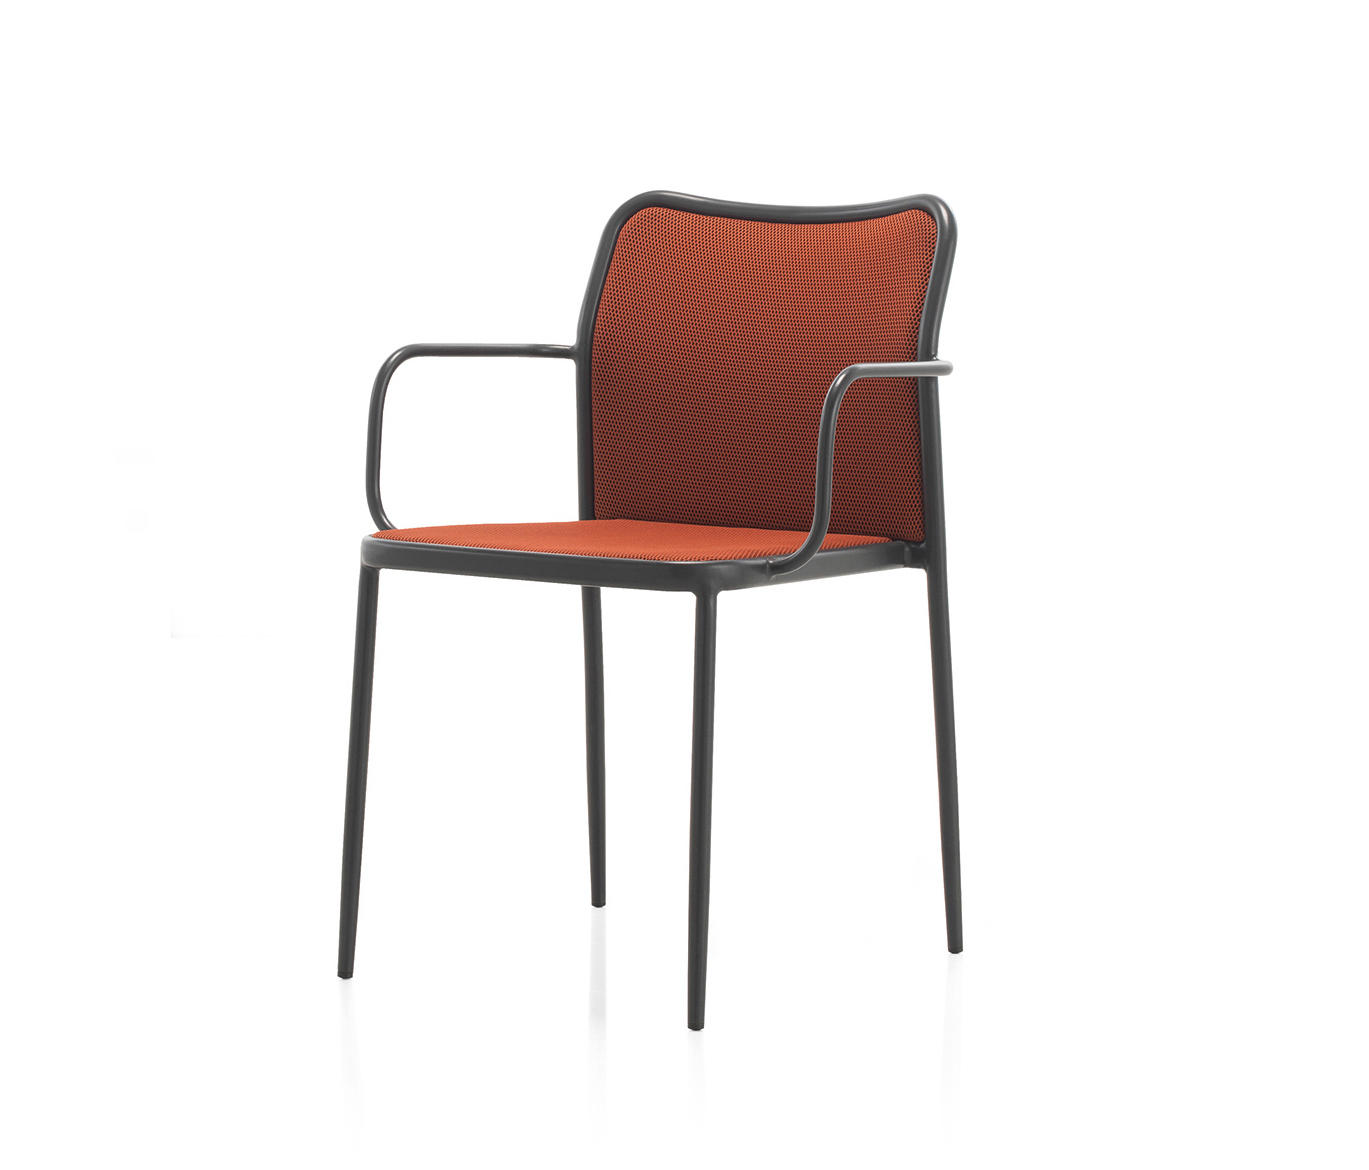 Sessel 3d Senso Chairs Sessel 3d Mesh - Stühle Von Expormim | Architonic